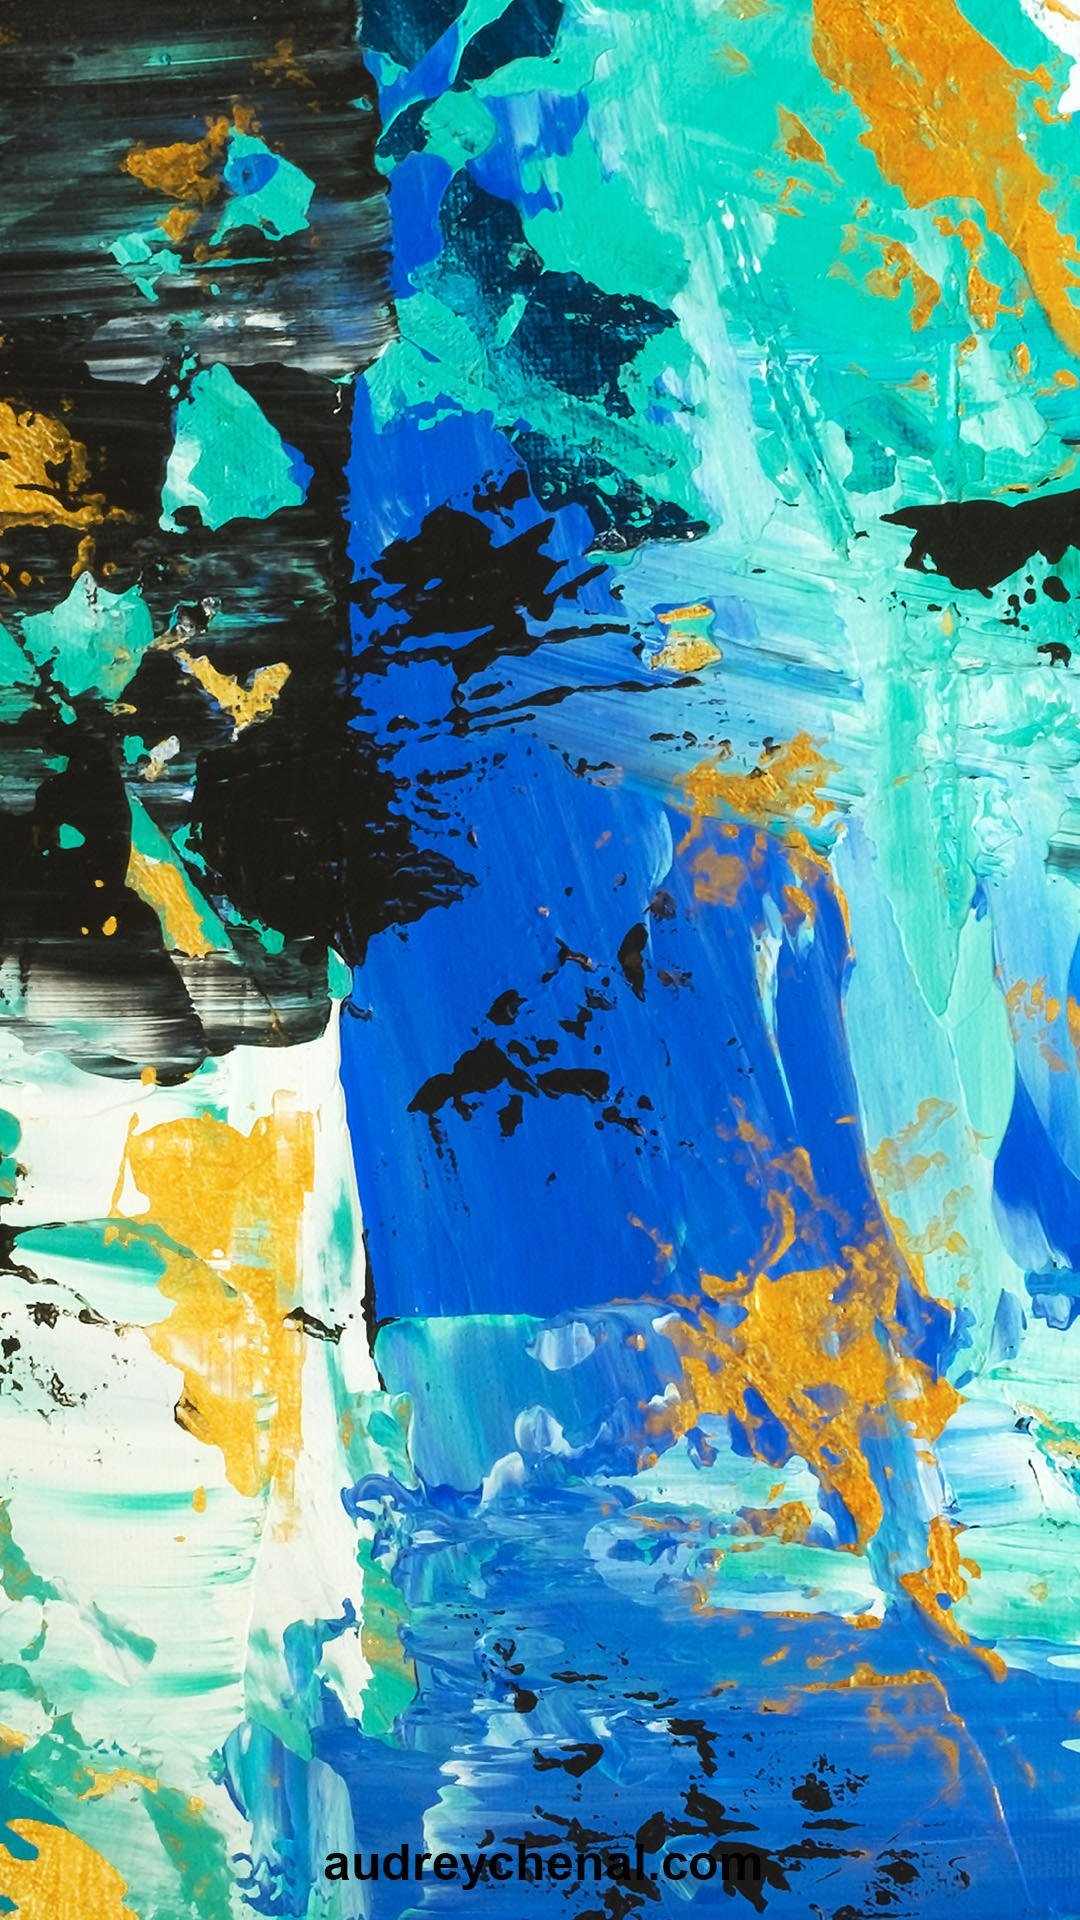 wallpaper Don't lose your present to your past Abstract blue turquoise gold brushstrokes original acrylic painting by Audrey Chenal